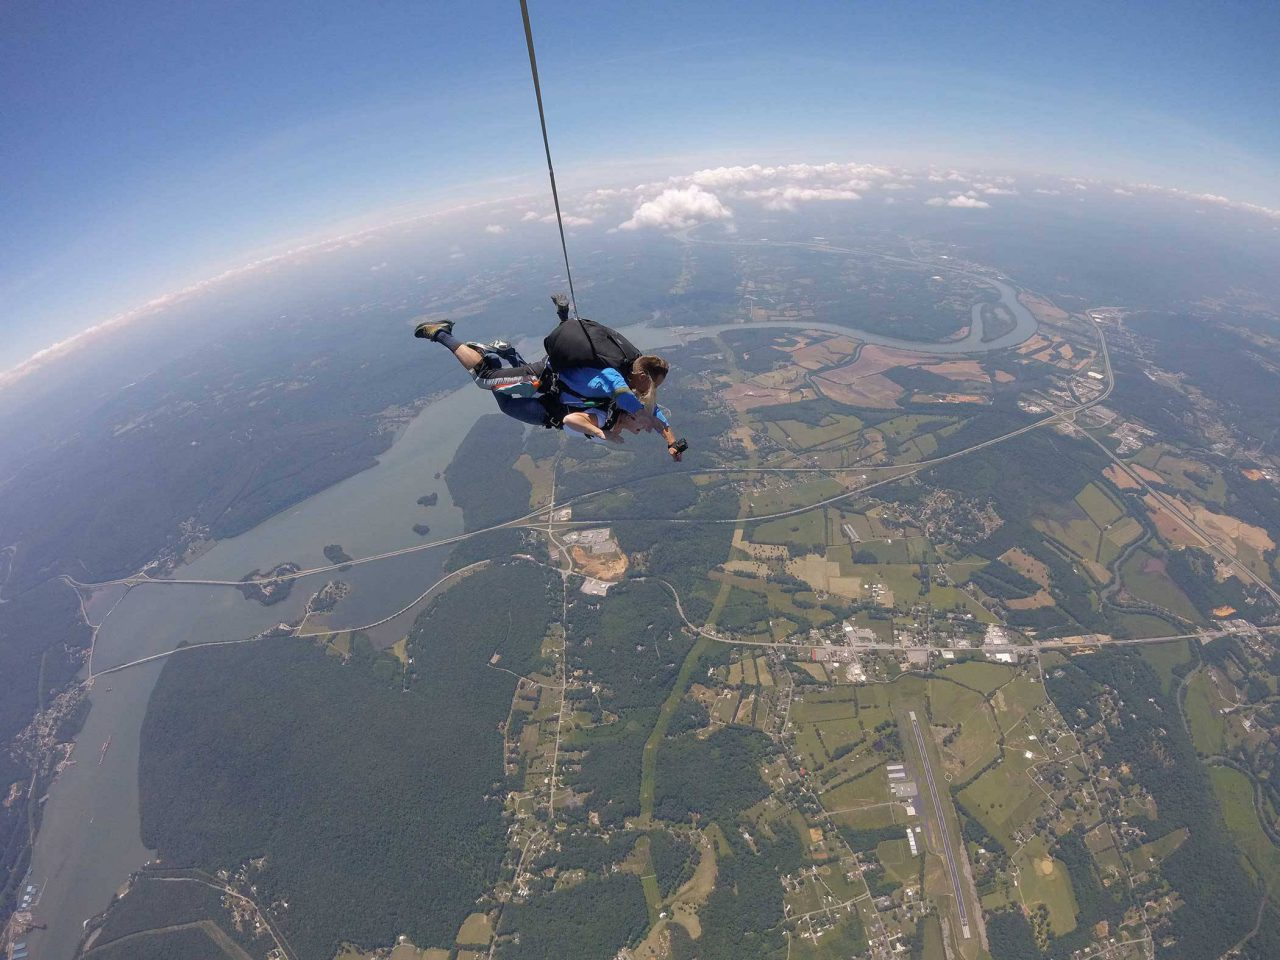 Male tandem skydiver stretches arms out while enjoying his skydive at Chattanooga Skydiving Company